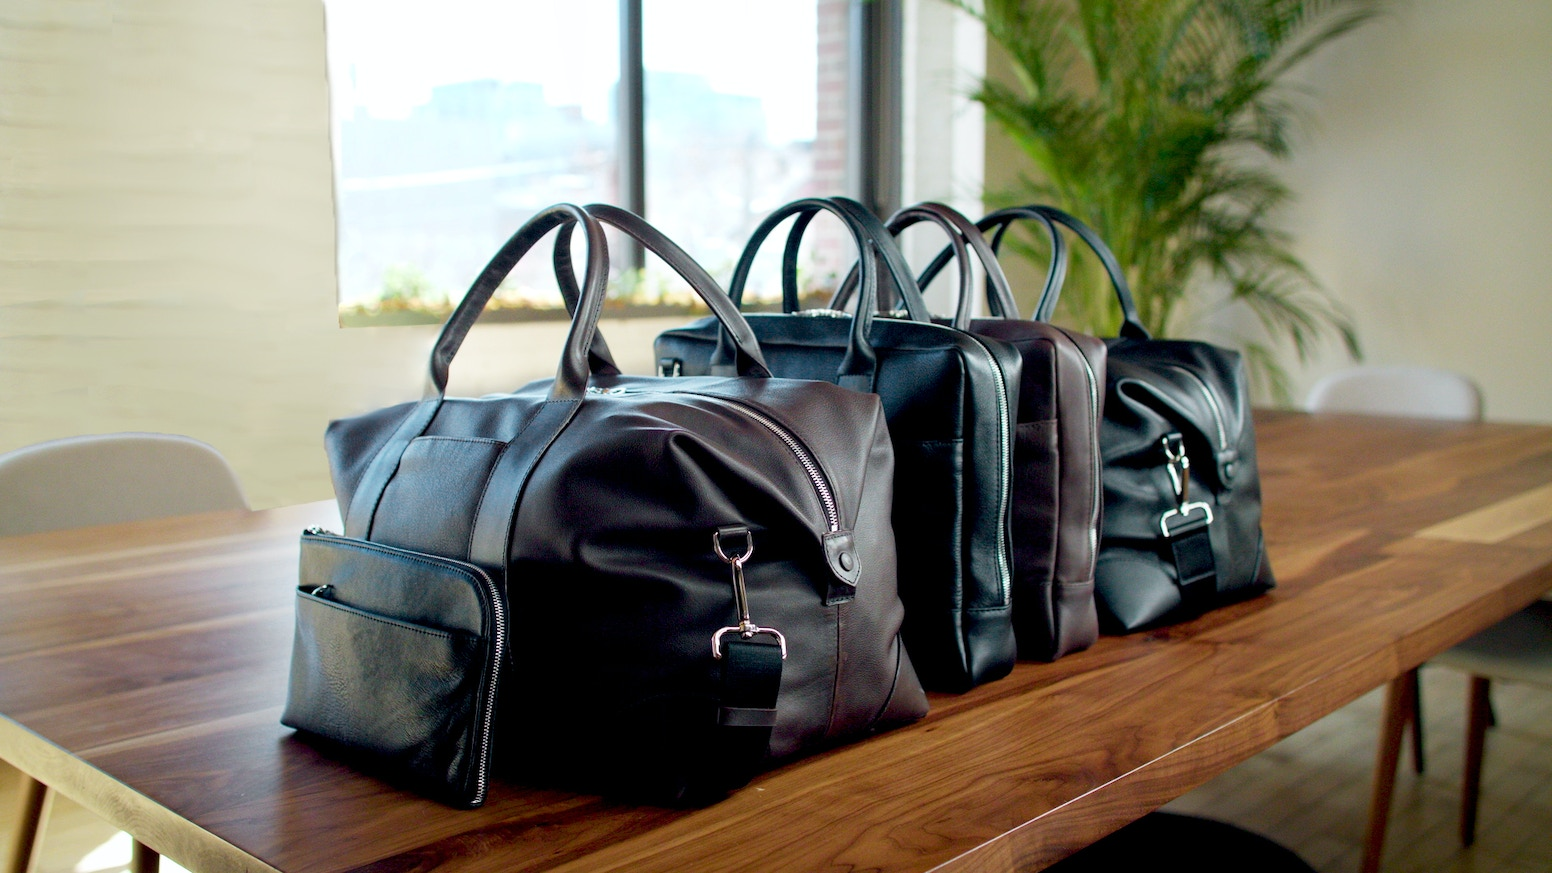 Luxury bags, thoughtfully designed and produced for your journey through life.